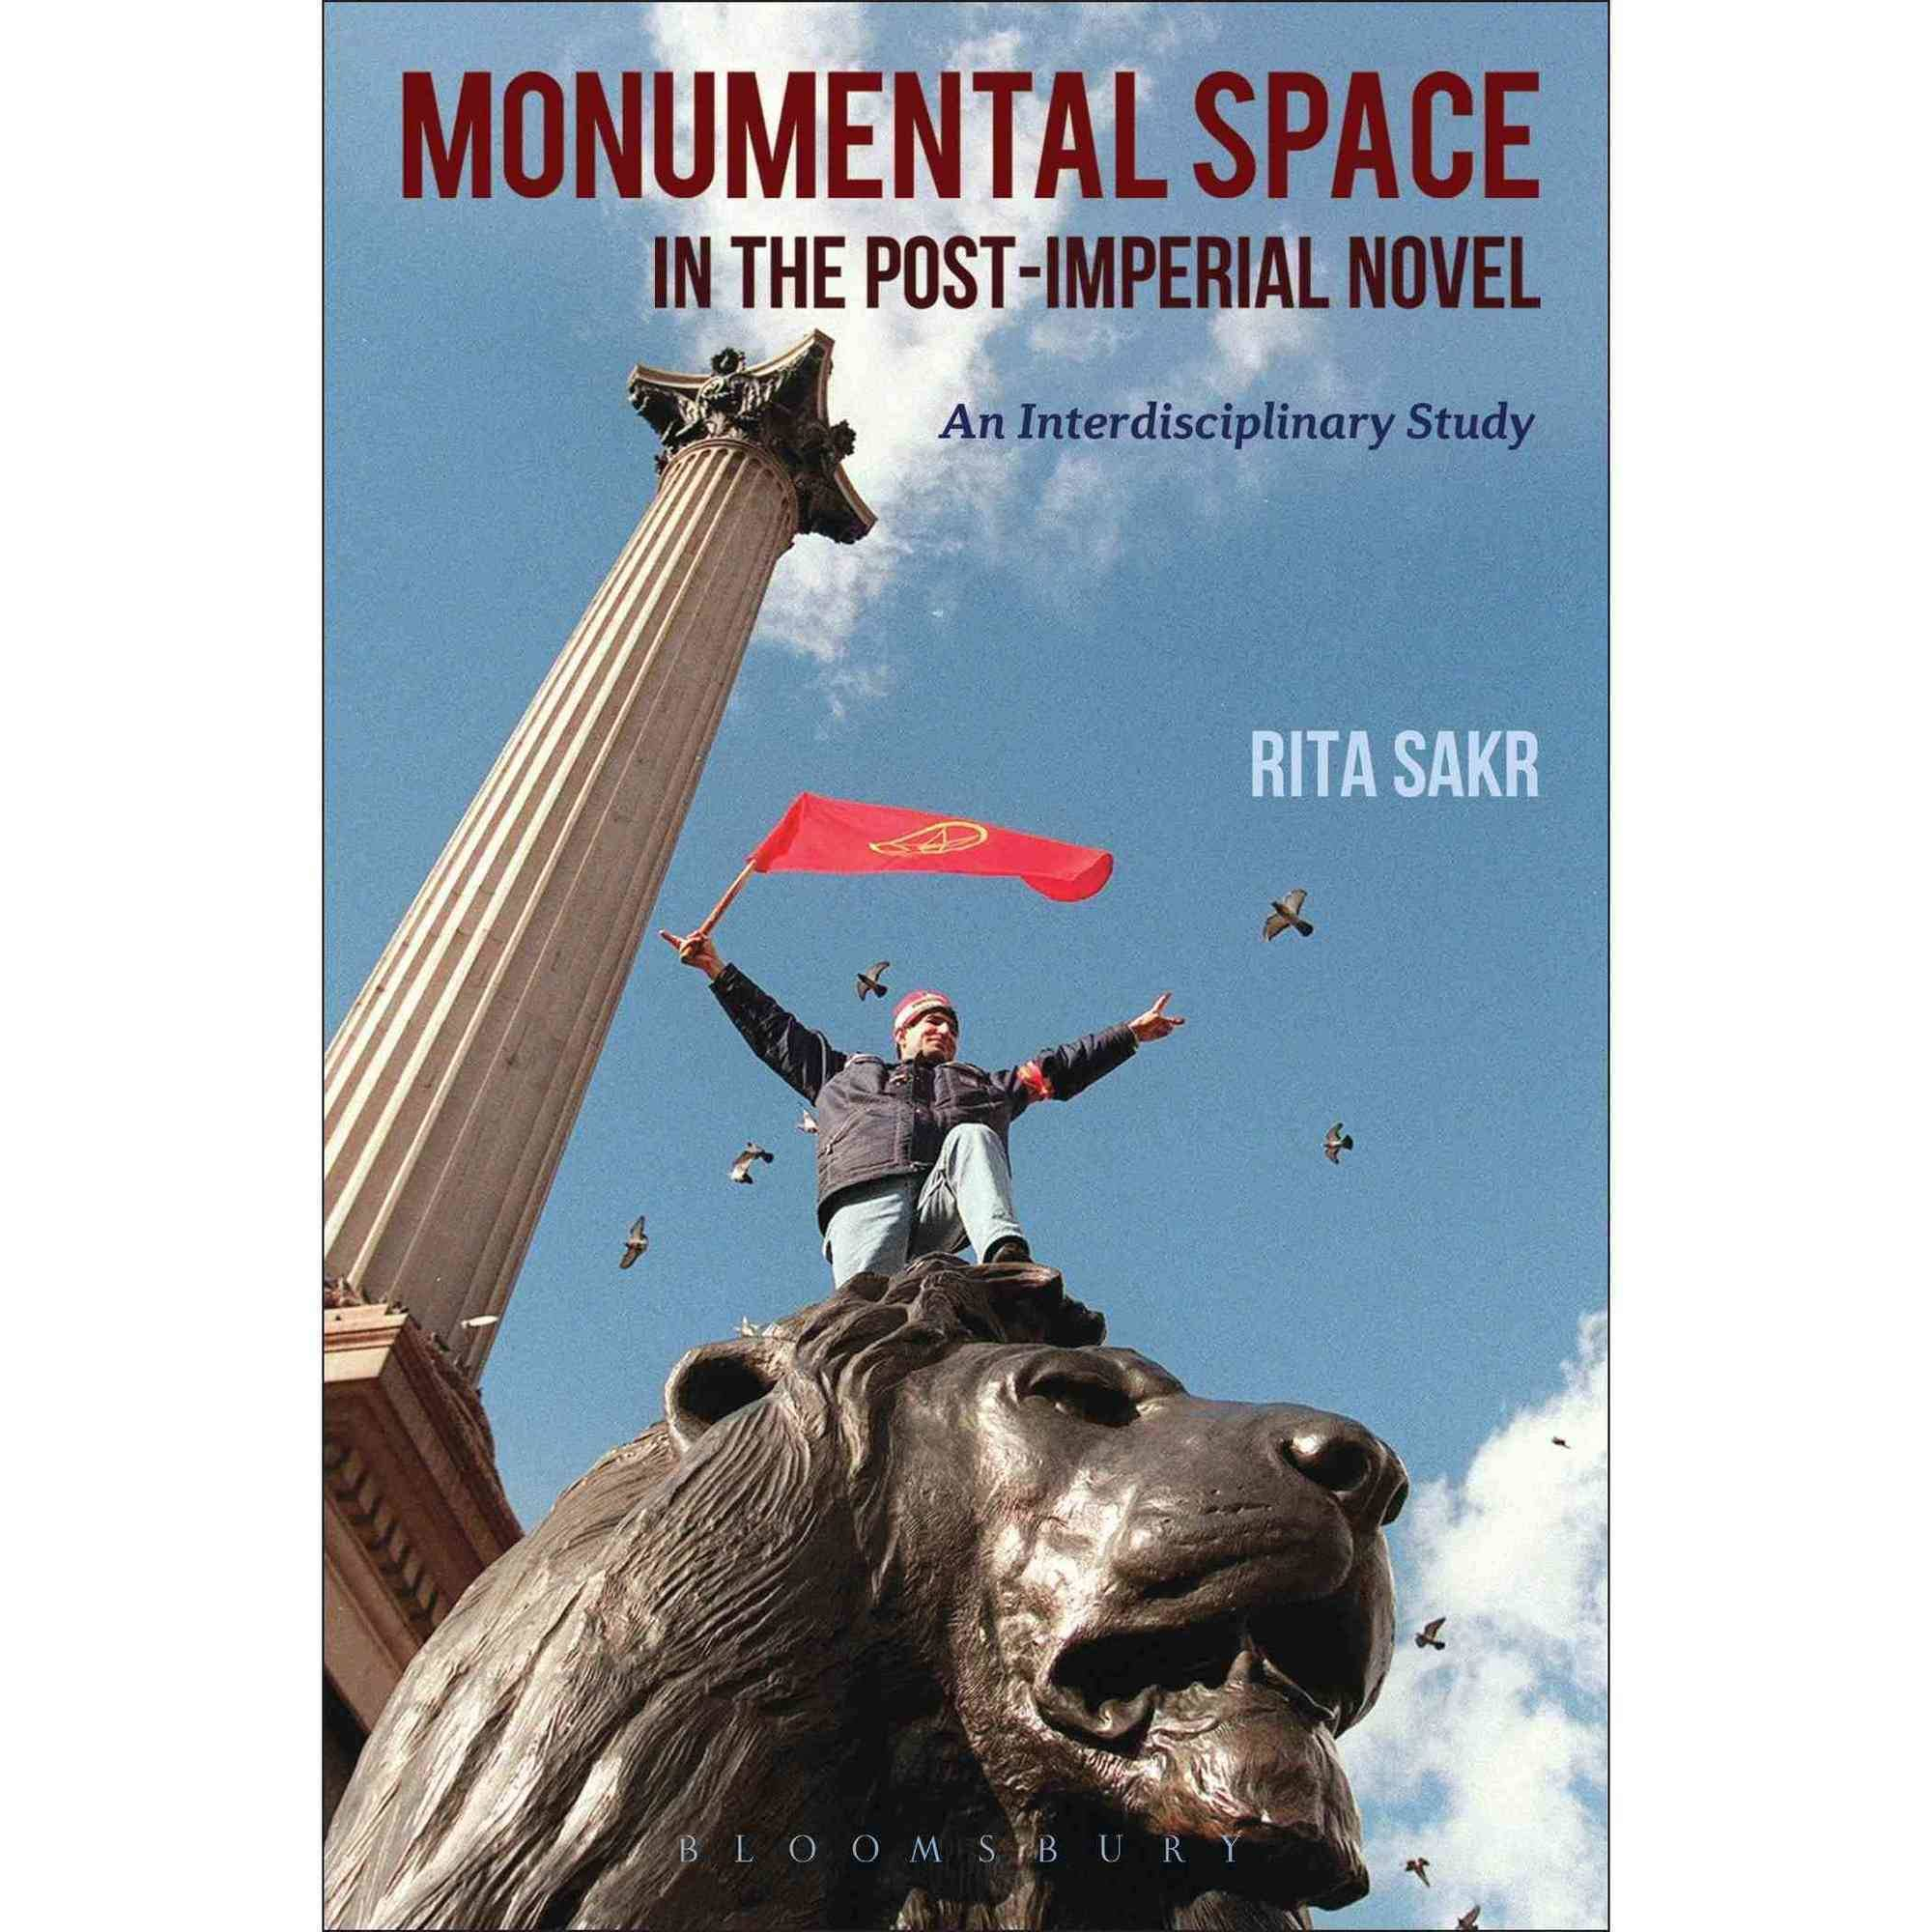 Monumental Space in the Post-Imperial Novel: An Interdisciplinary Study